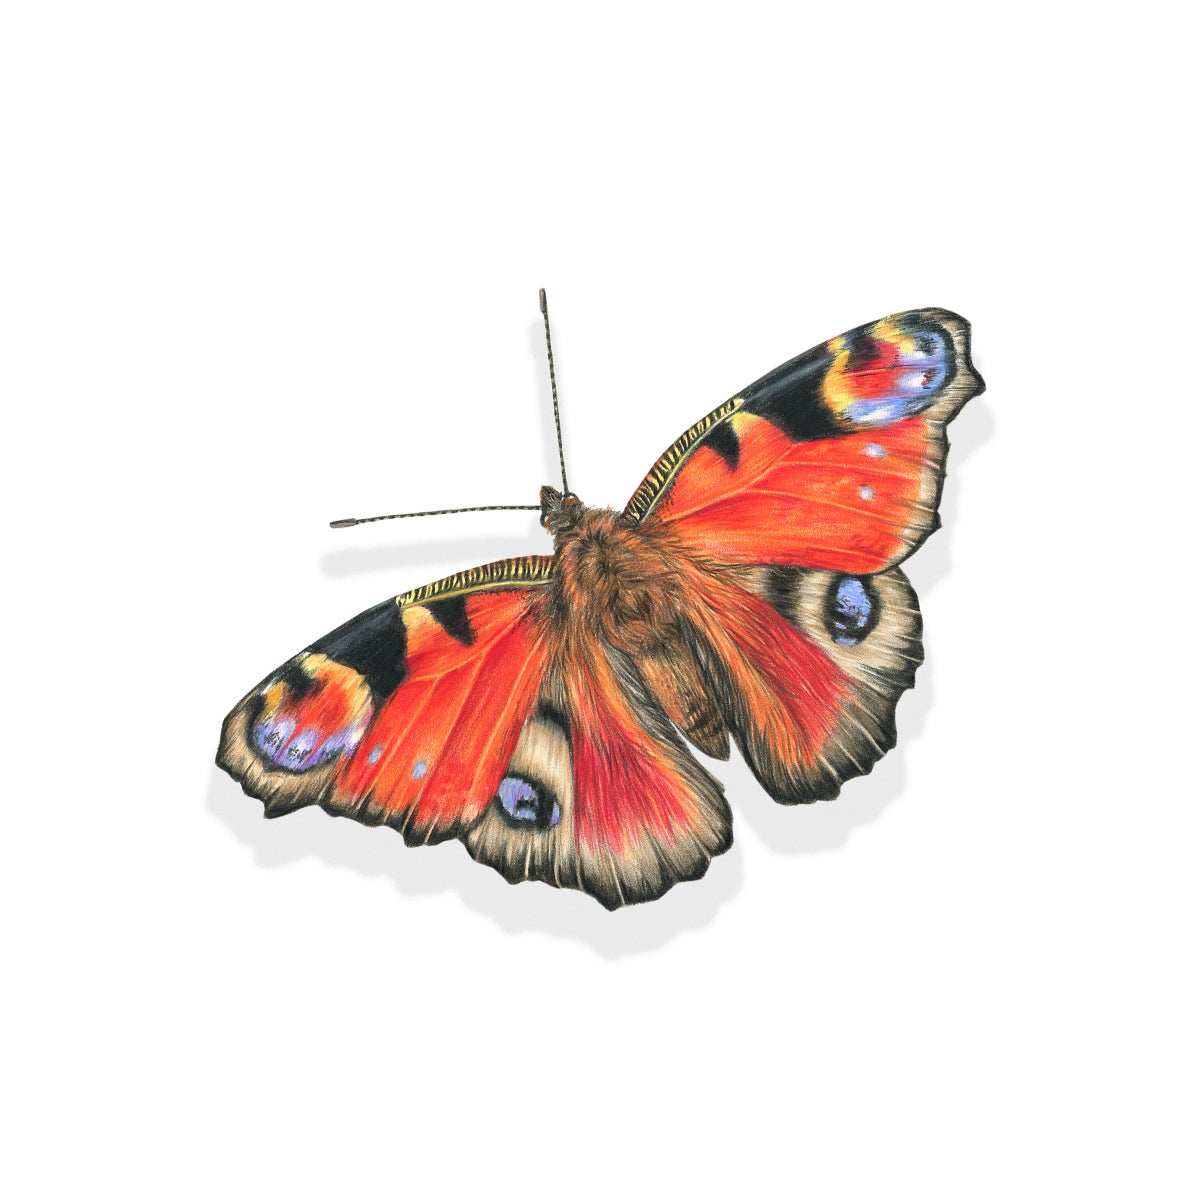 Image of 'Peacock Butterfly' Limited Edition Giclee Print